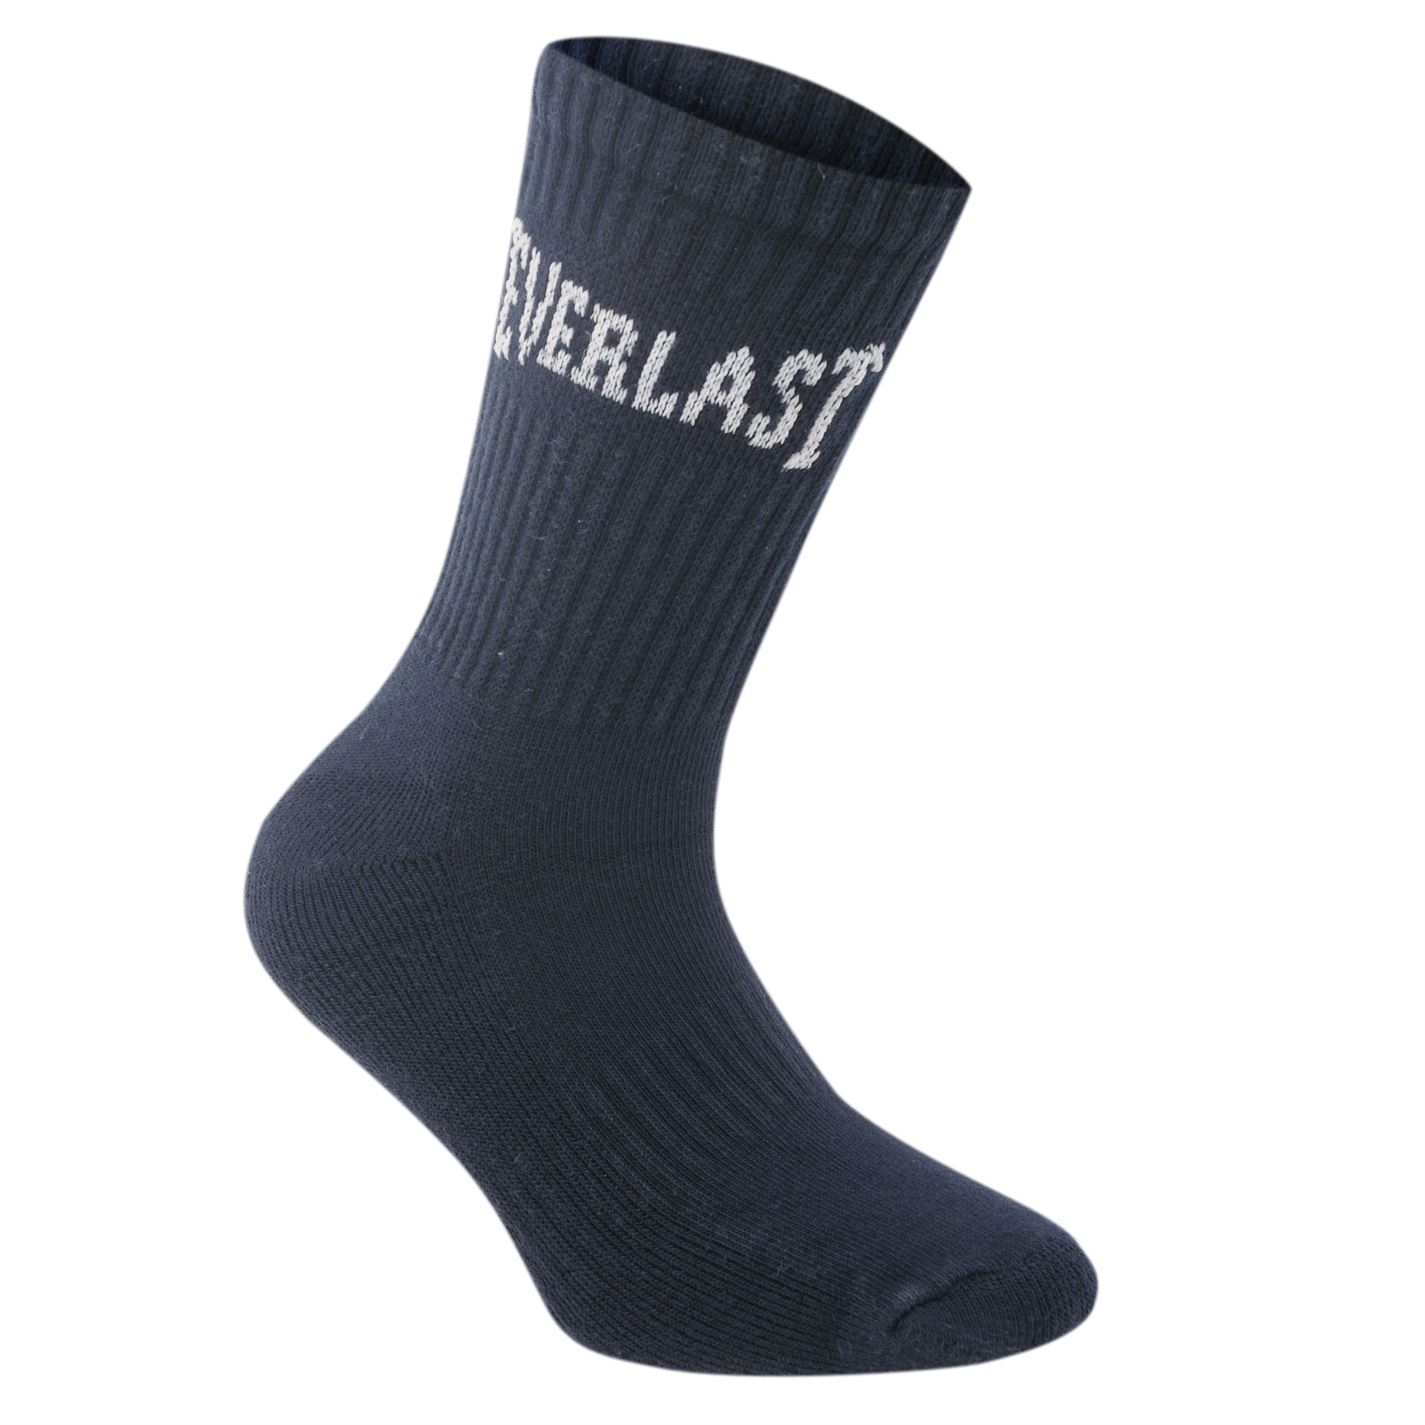 Everlast 3 Pack Crew Socks Uomo Gents